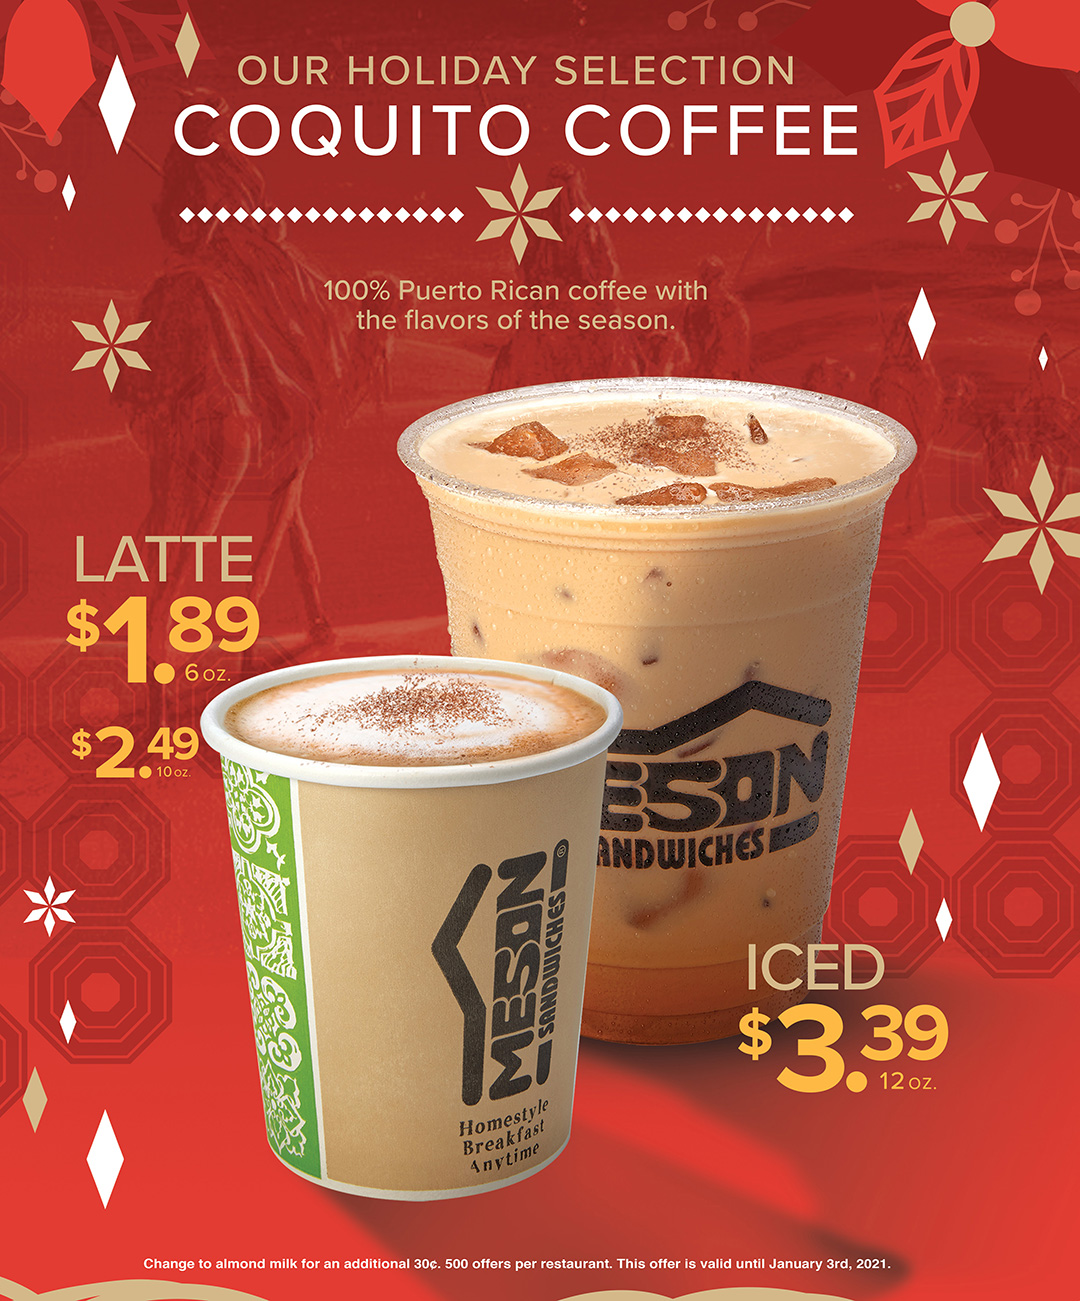 Coquito Coffee